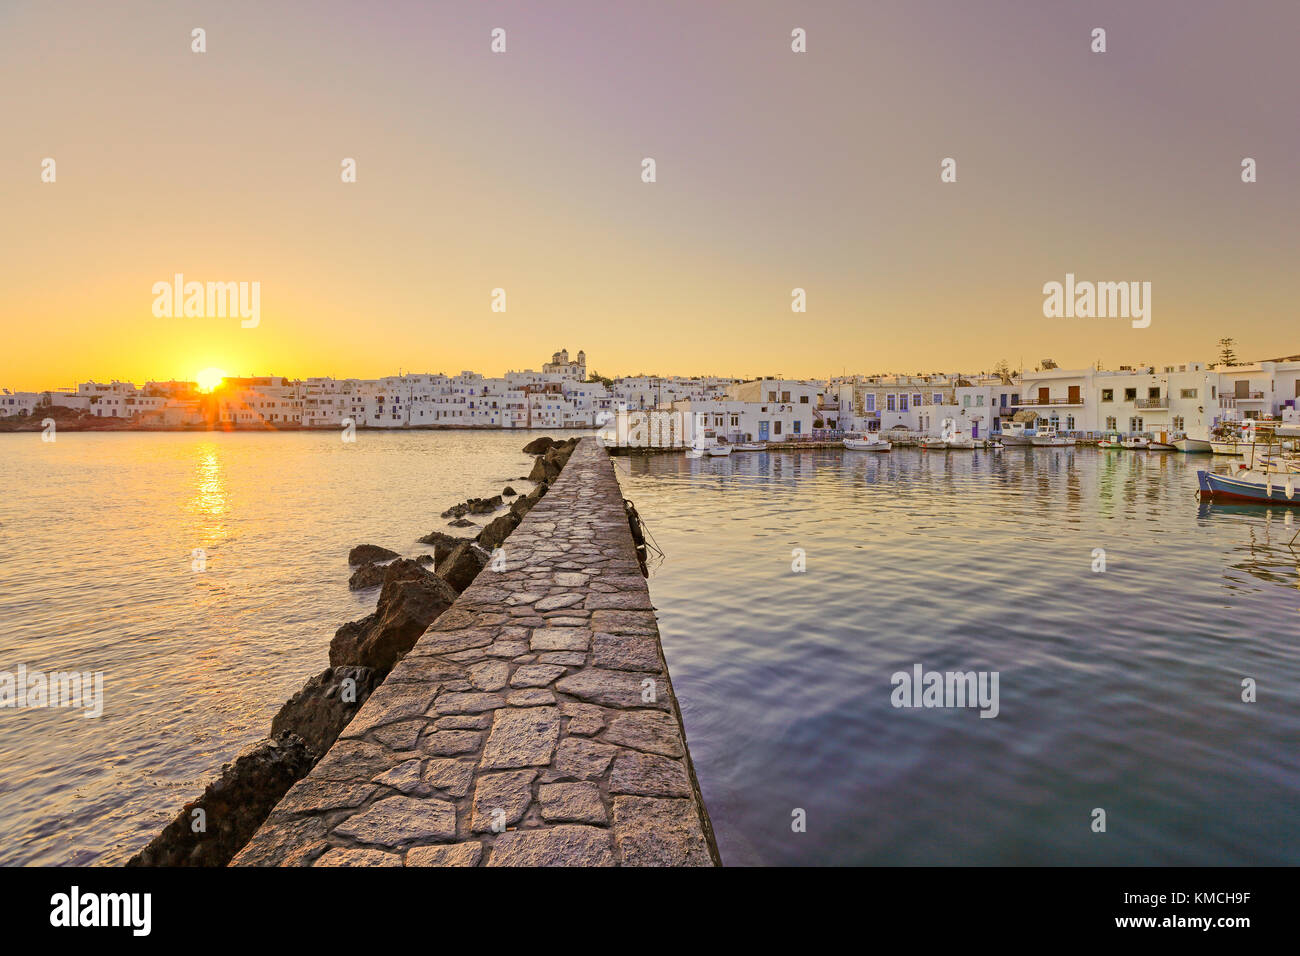 The sunrise at the port of Naousa in Paros island, Greece - Stock Image